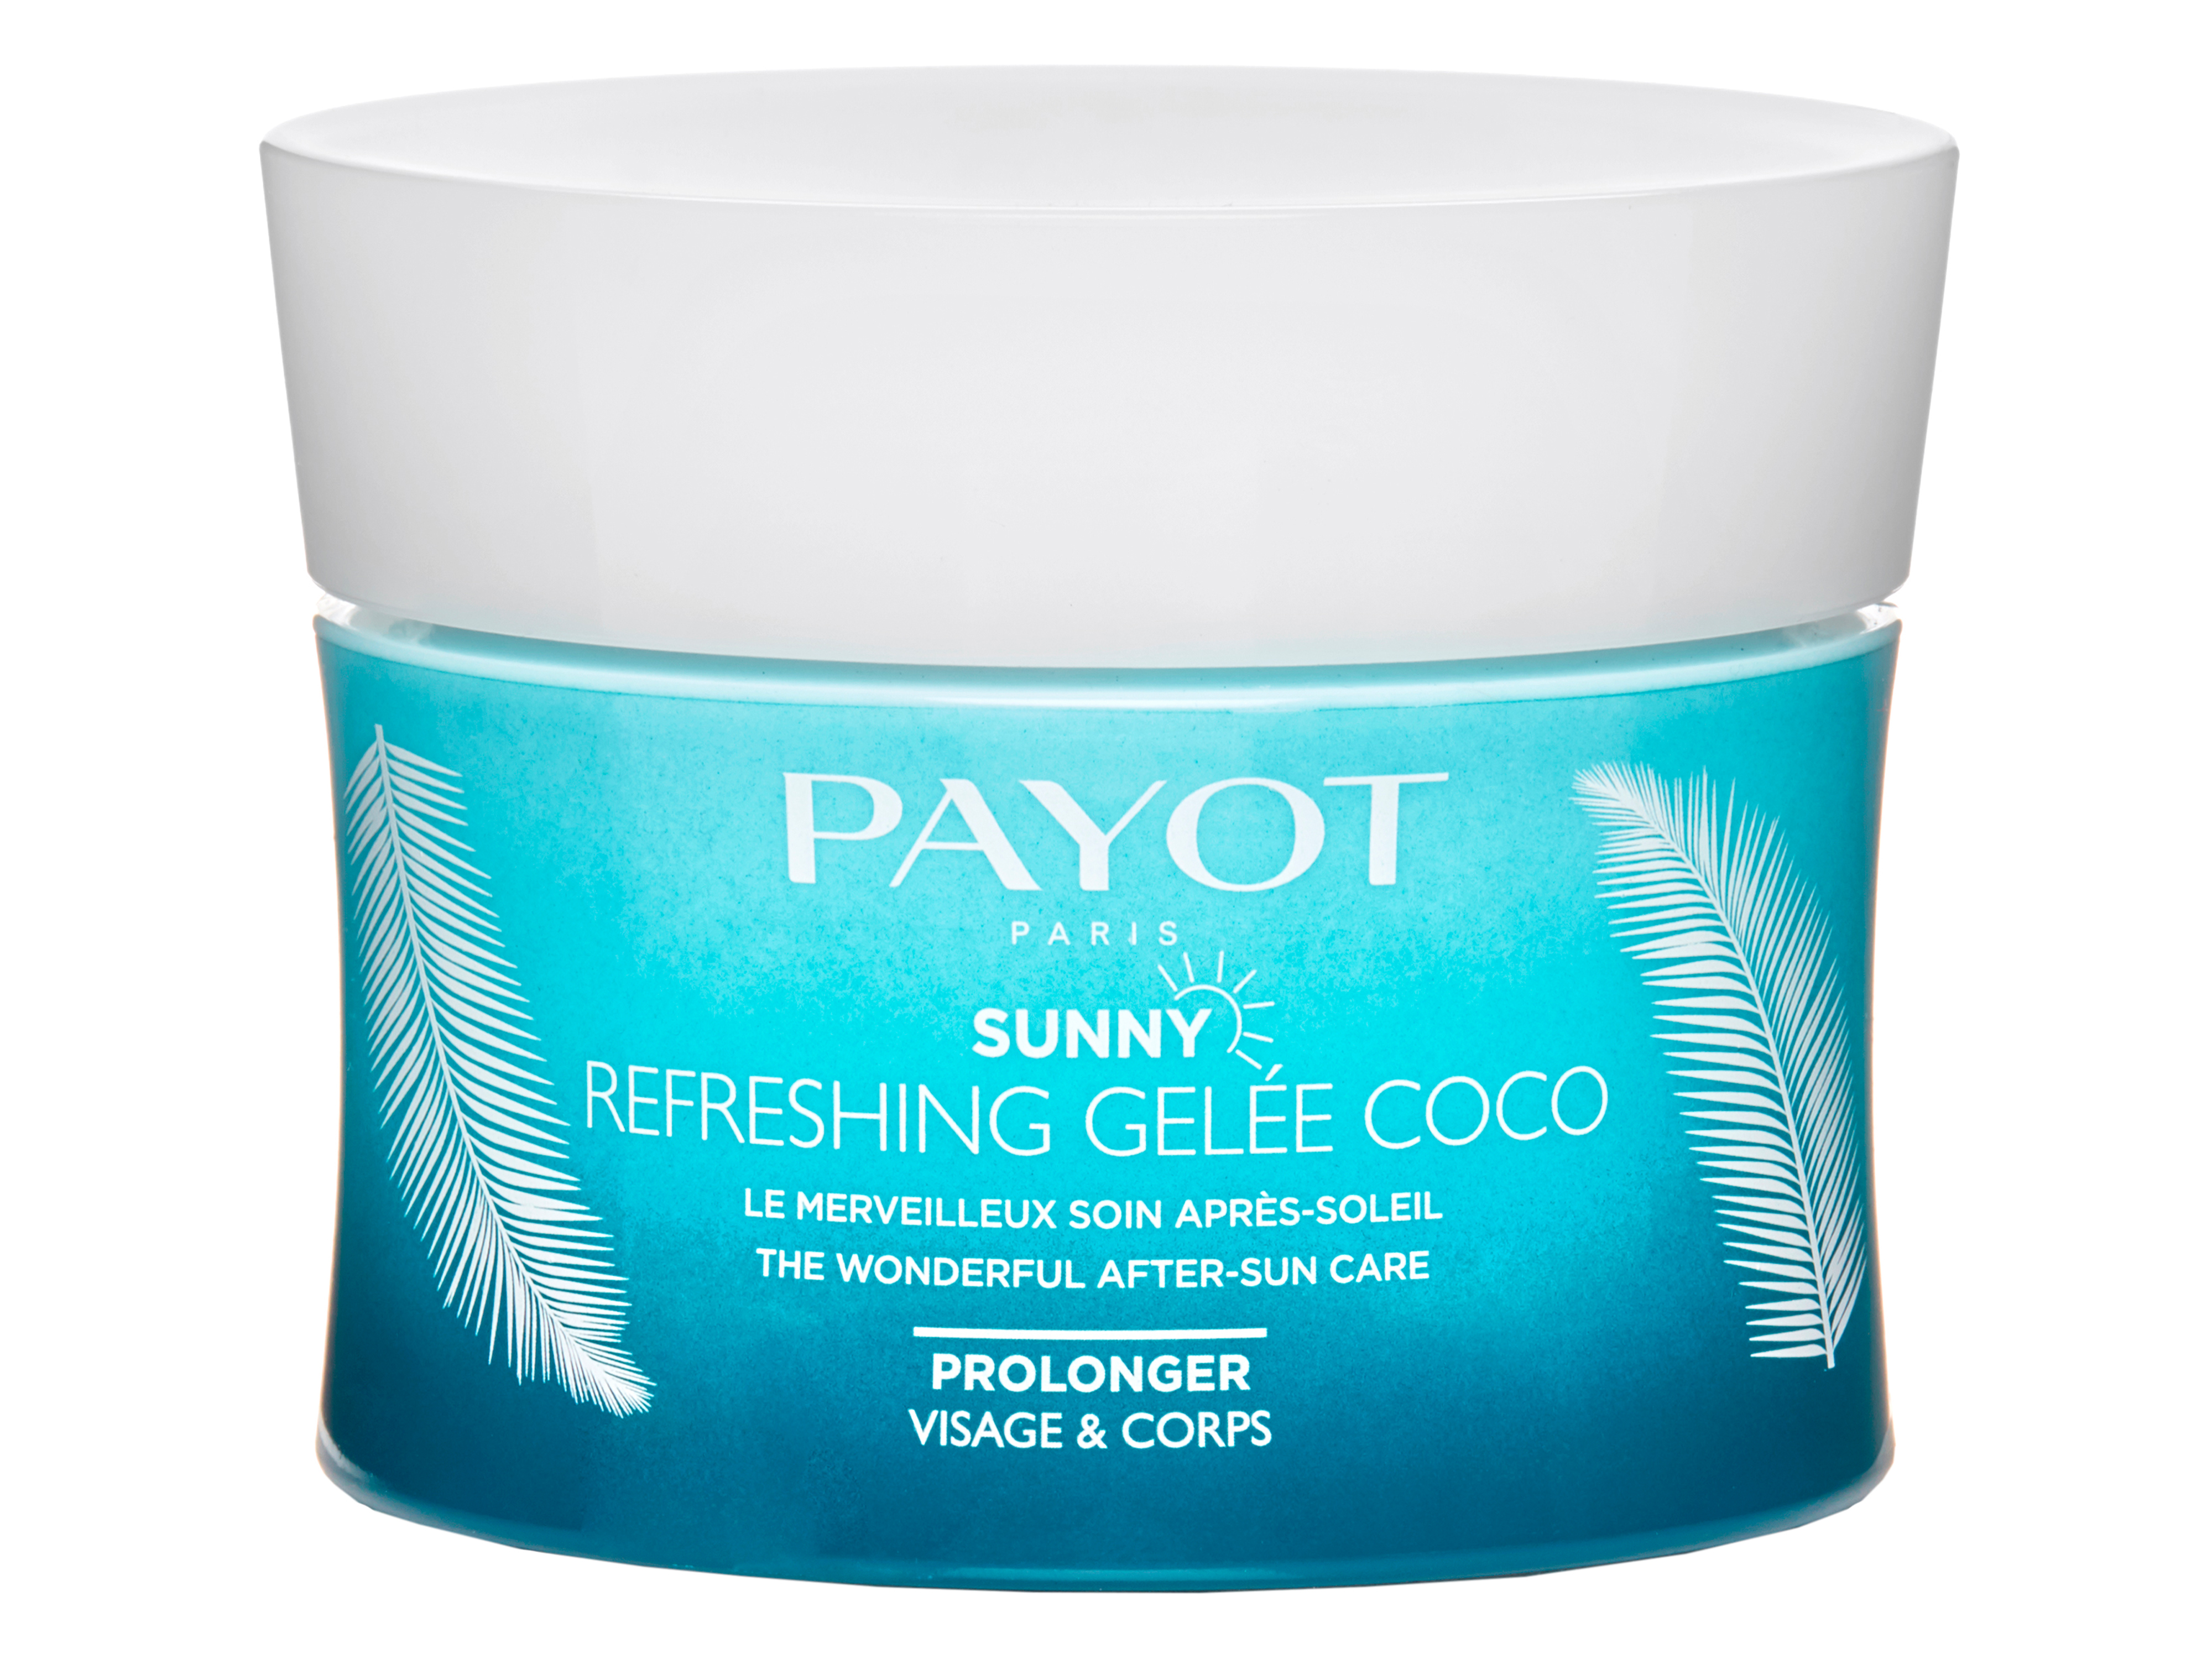 Payot Sunny Refreshing Gelée Coco, 100 ml